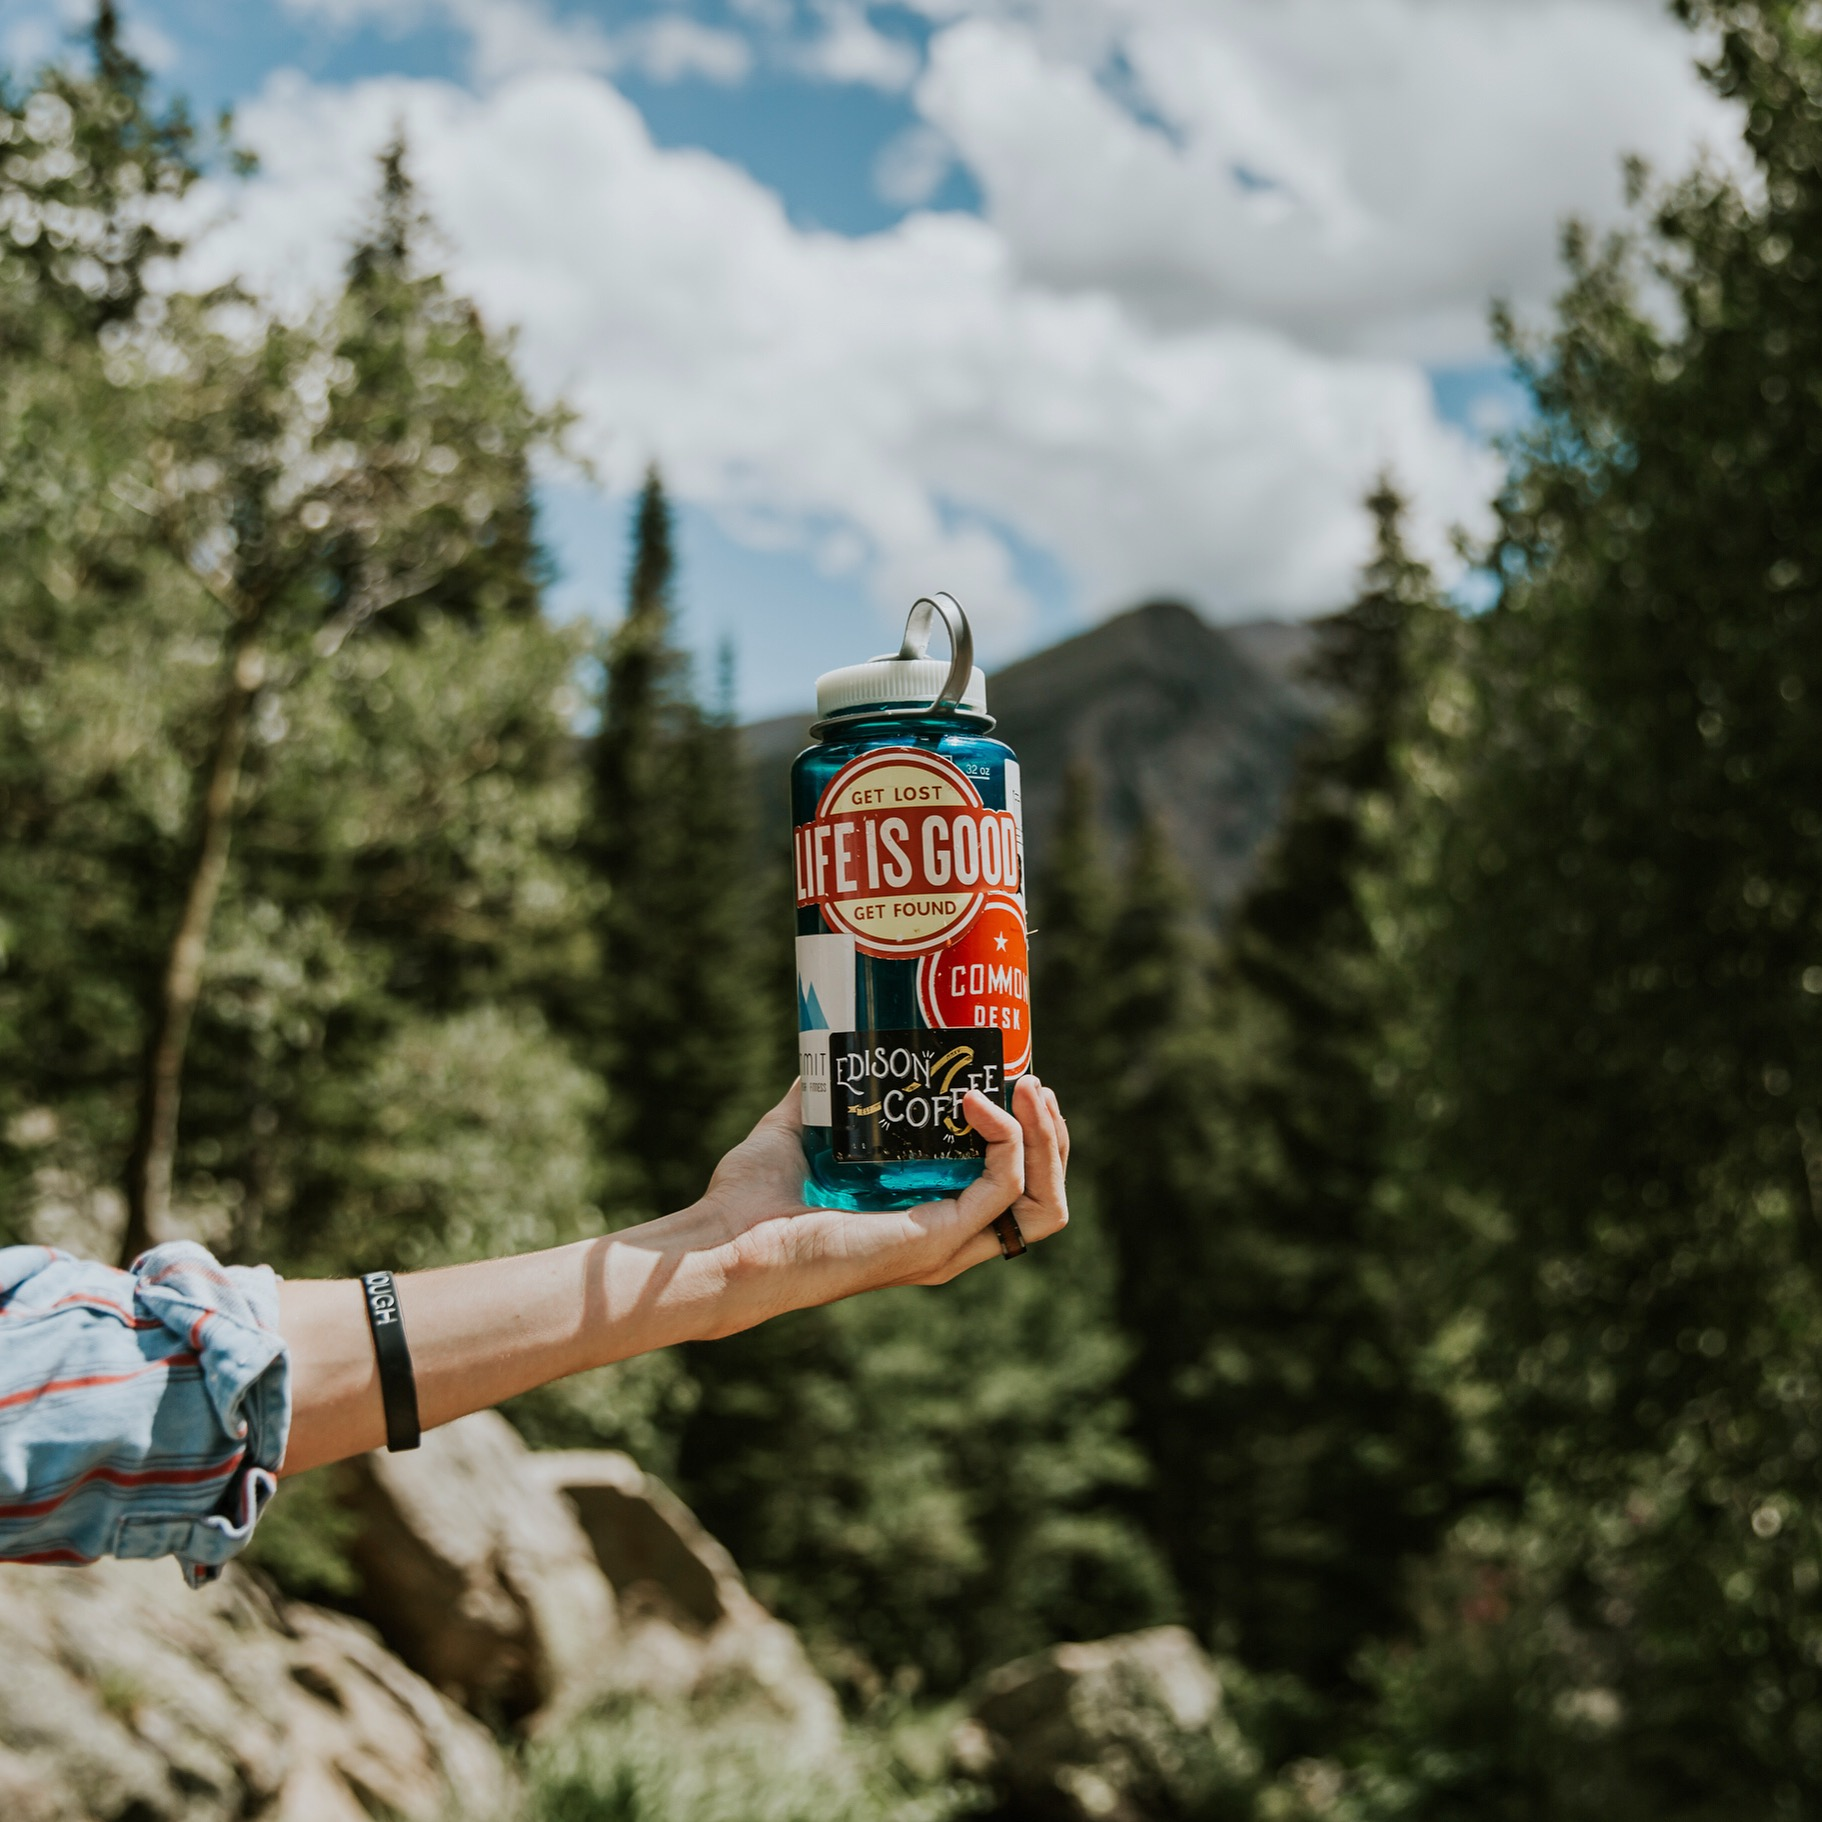 reusable water bottle used for hydrating while hiking